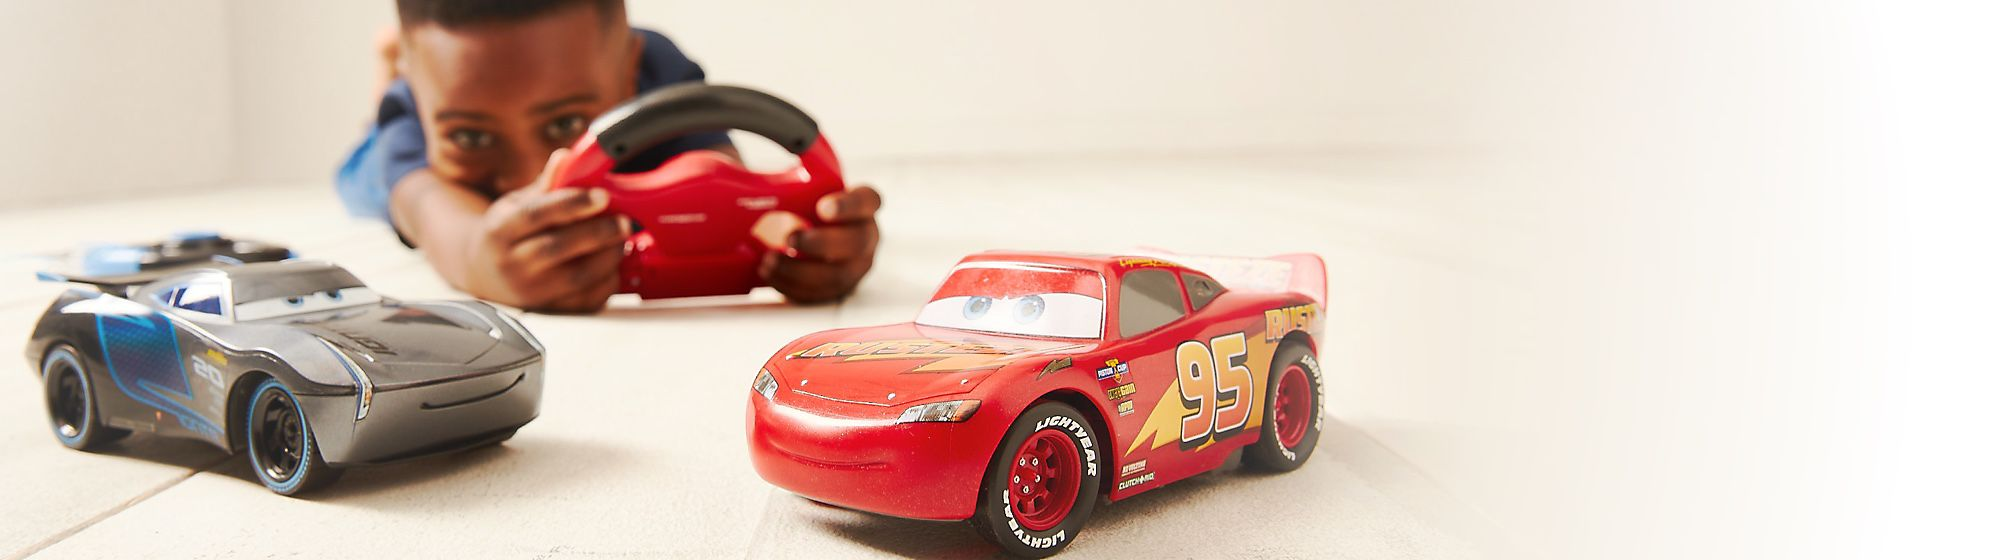 Vehicles & RC Toys Discover our wow-worthy vehicles and